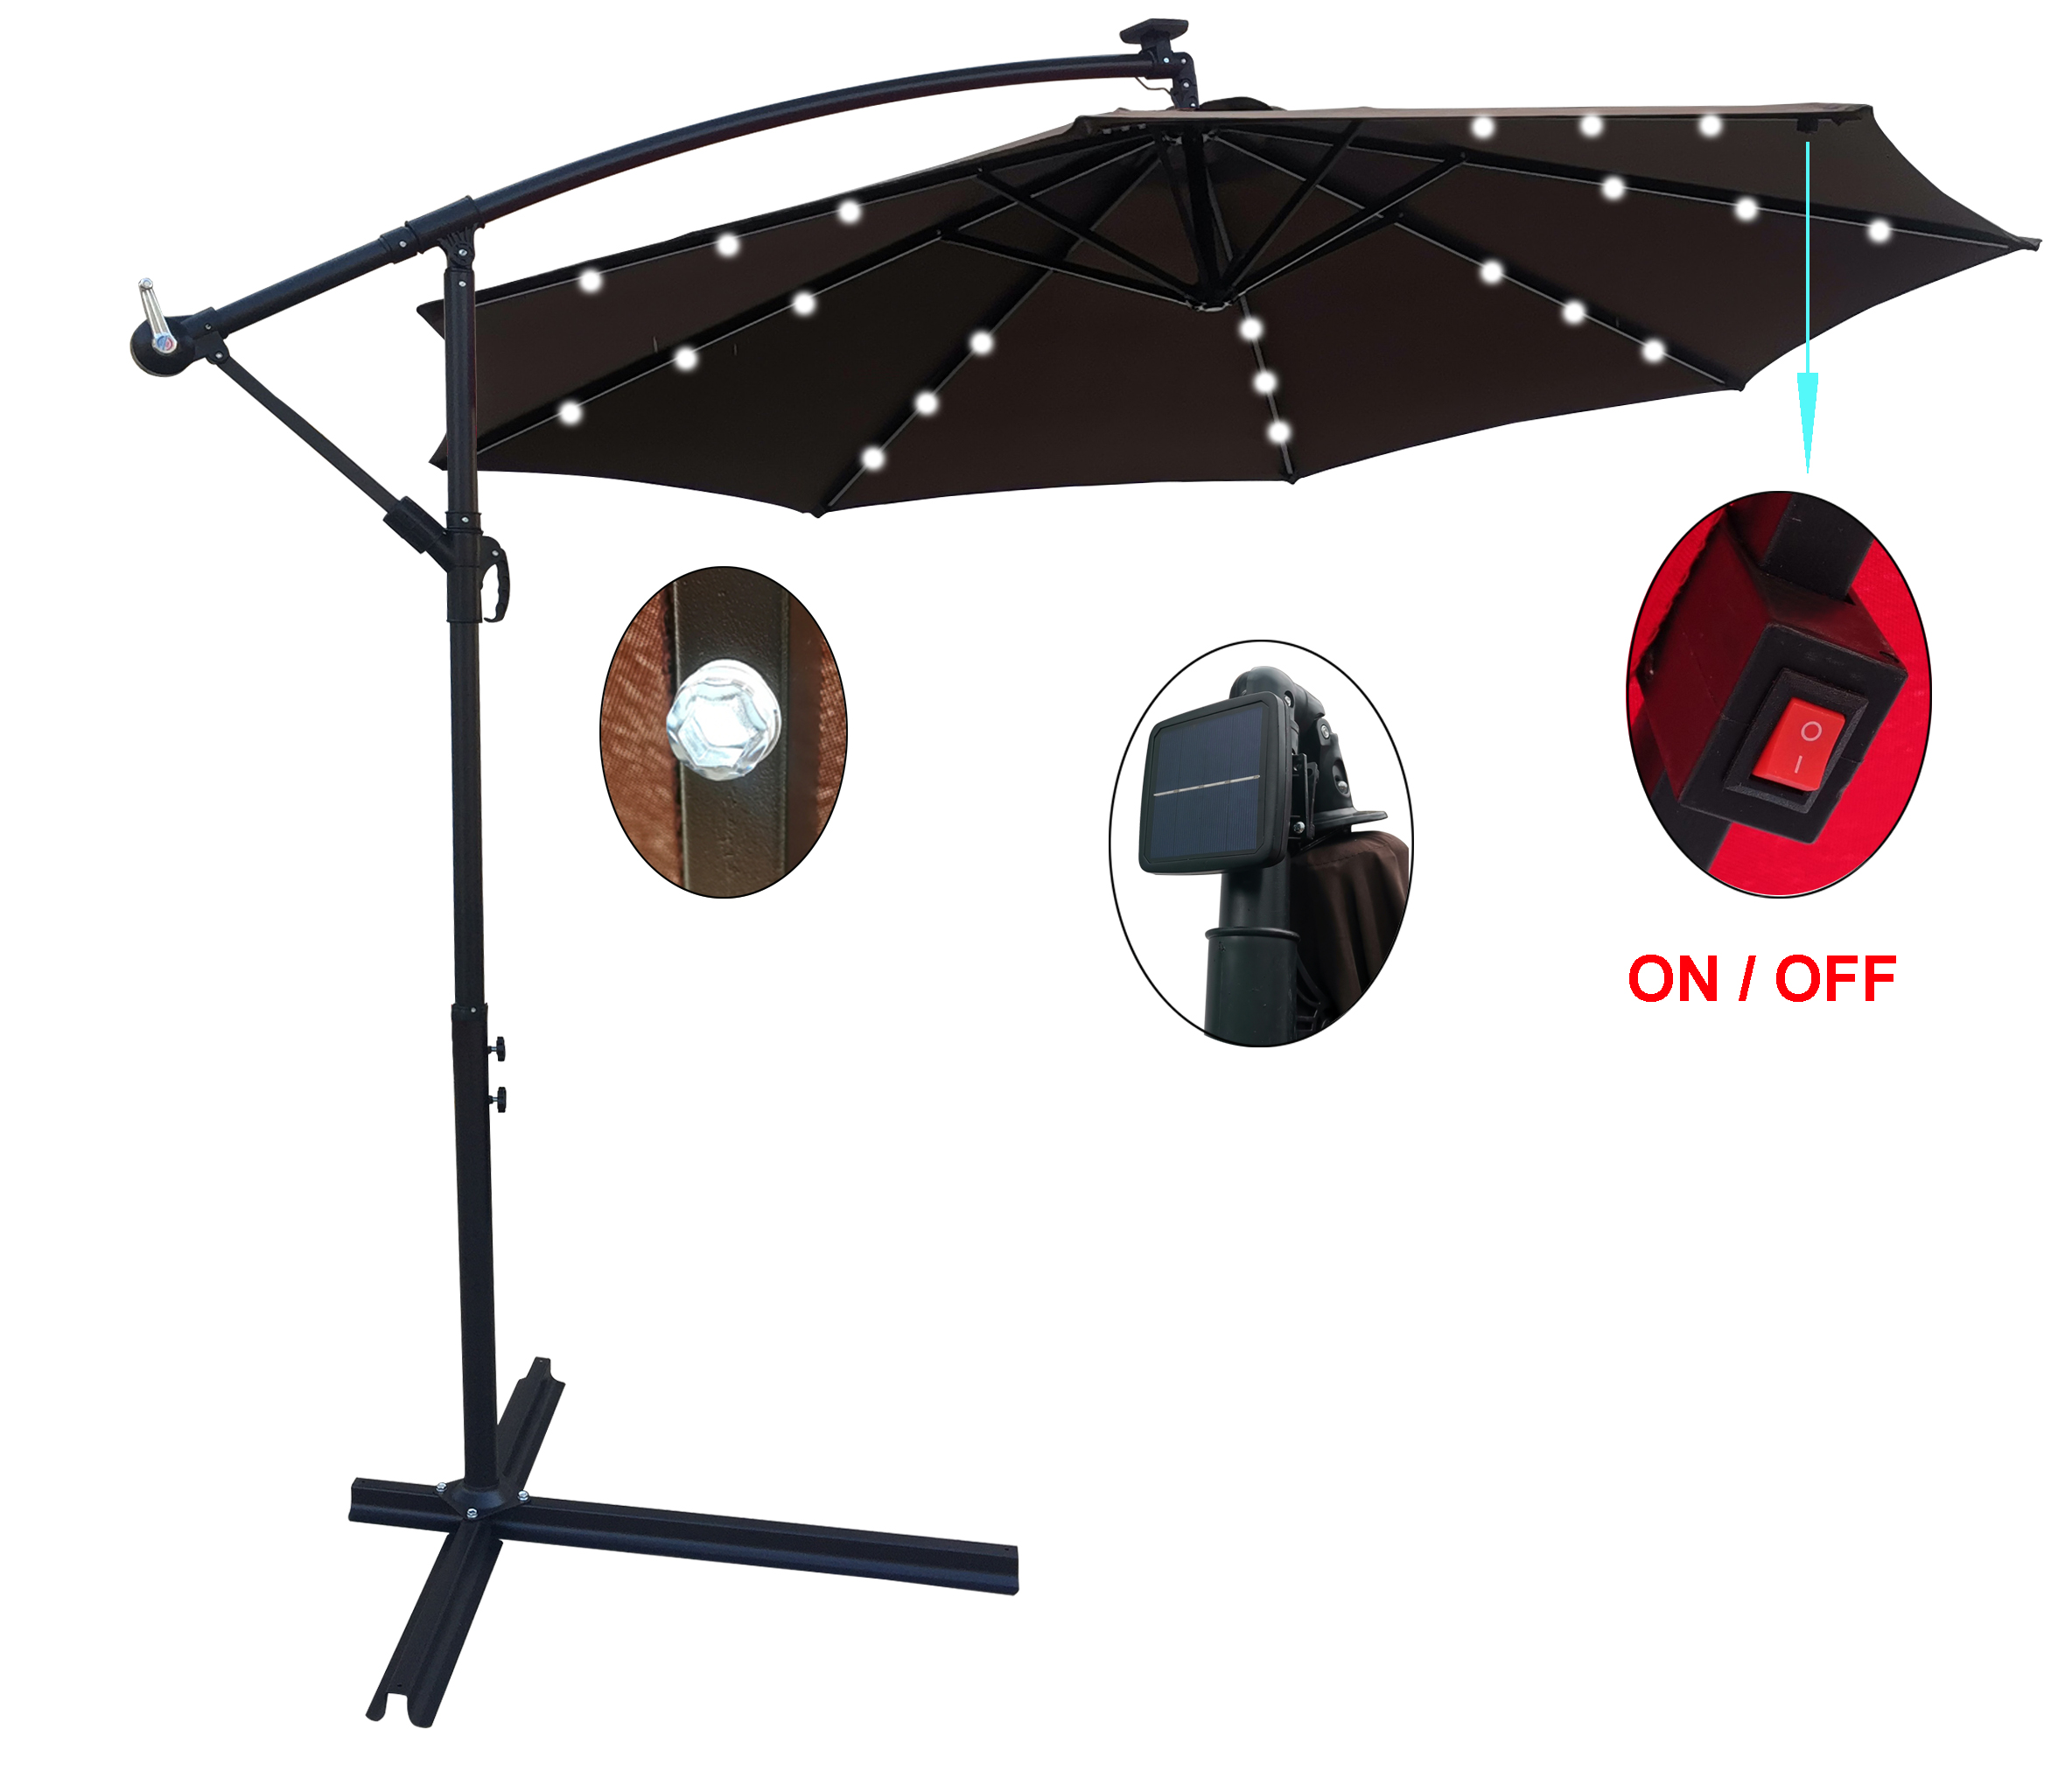 [US Direct] 10 ft Outdoor Patio Umbrella Solar Powered LED Lighted Sun Shade Market Waterproof 8 Ribs Umbrella with Crank and Cross Base for Garden Deck Backyard Pool Shade Outside Deck Swimming Pool